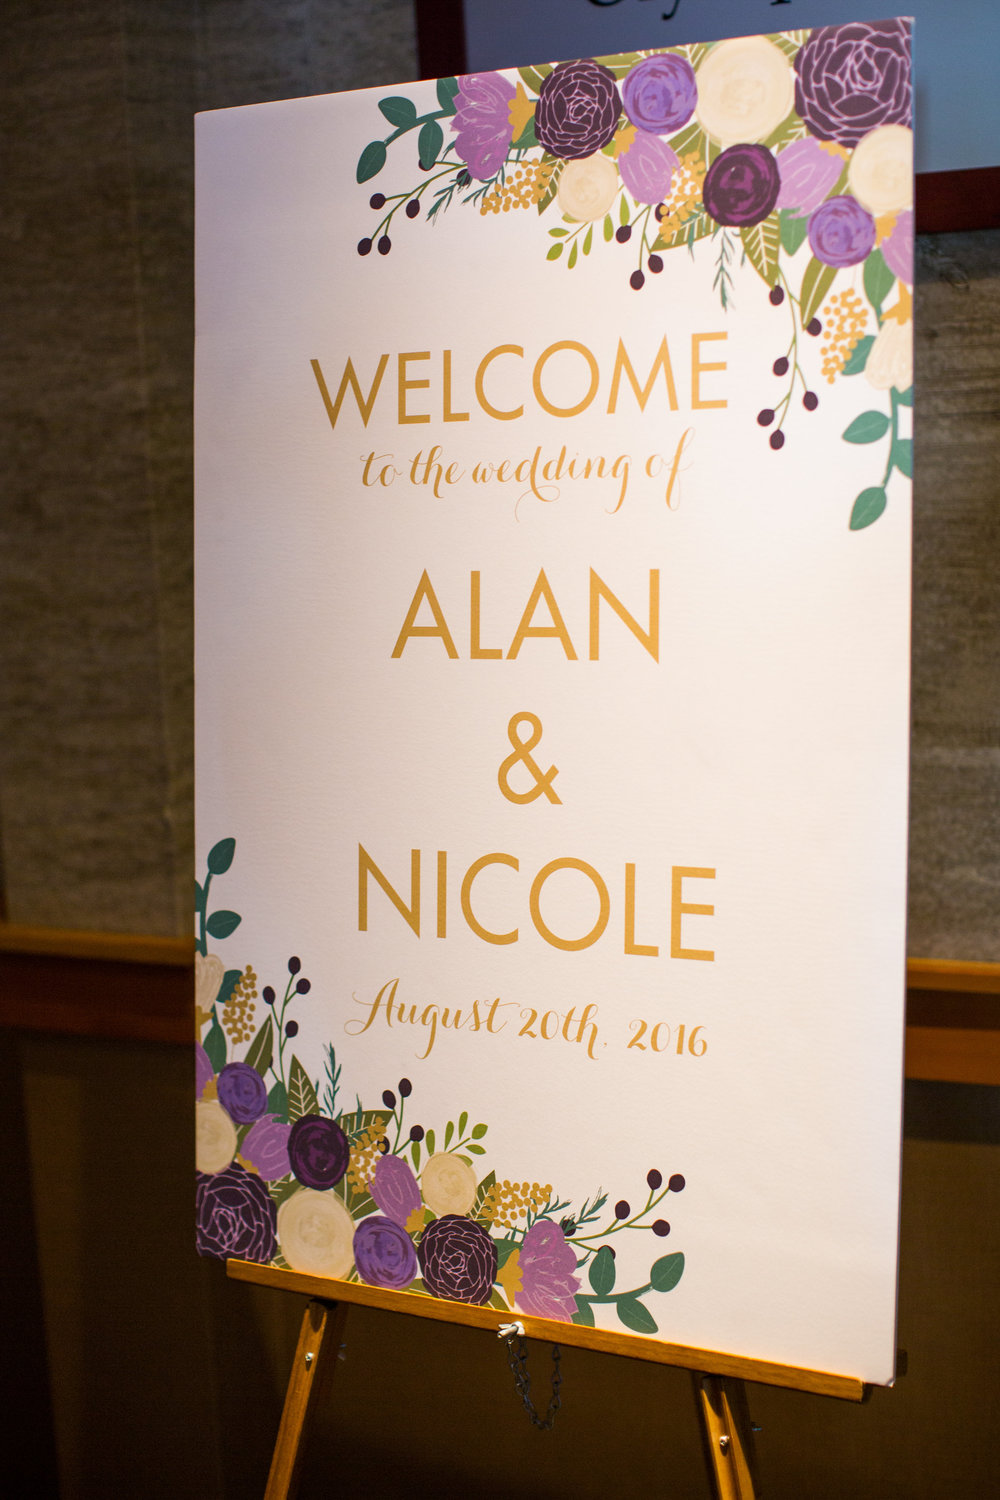 Seattle Wedding Planner, Wedding Wise | Ciccarelli Photography | Edgewater Hotel Wedding | Purple and navy blue wedding | Wedding welcome sign